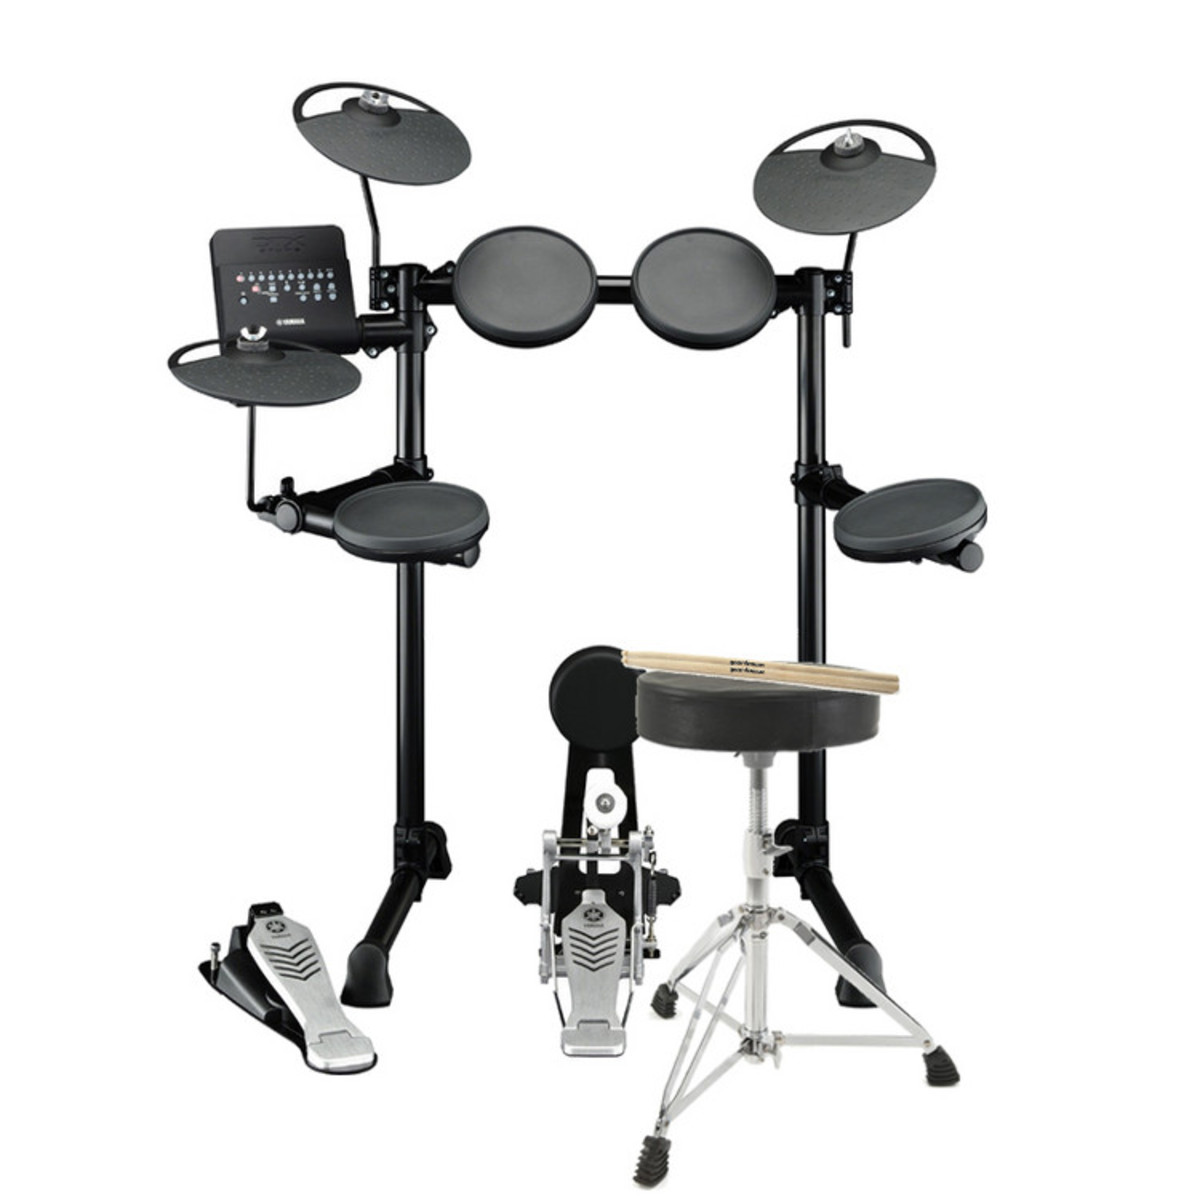 Yamaha DTX430K Electronic Drum Kit with FREE Stool and Sticks. Loading zoom  sc 1 st  Gear4music & Yamaha DTX430K Electronic Drum Kit including Stool and Sticks at ... islam-shia.org